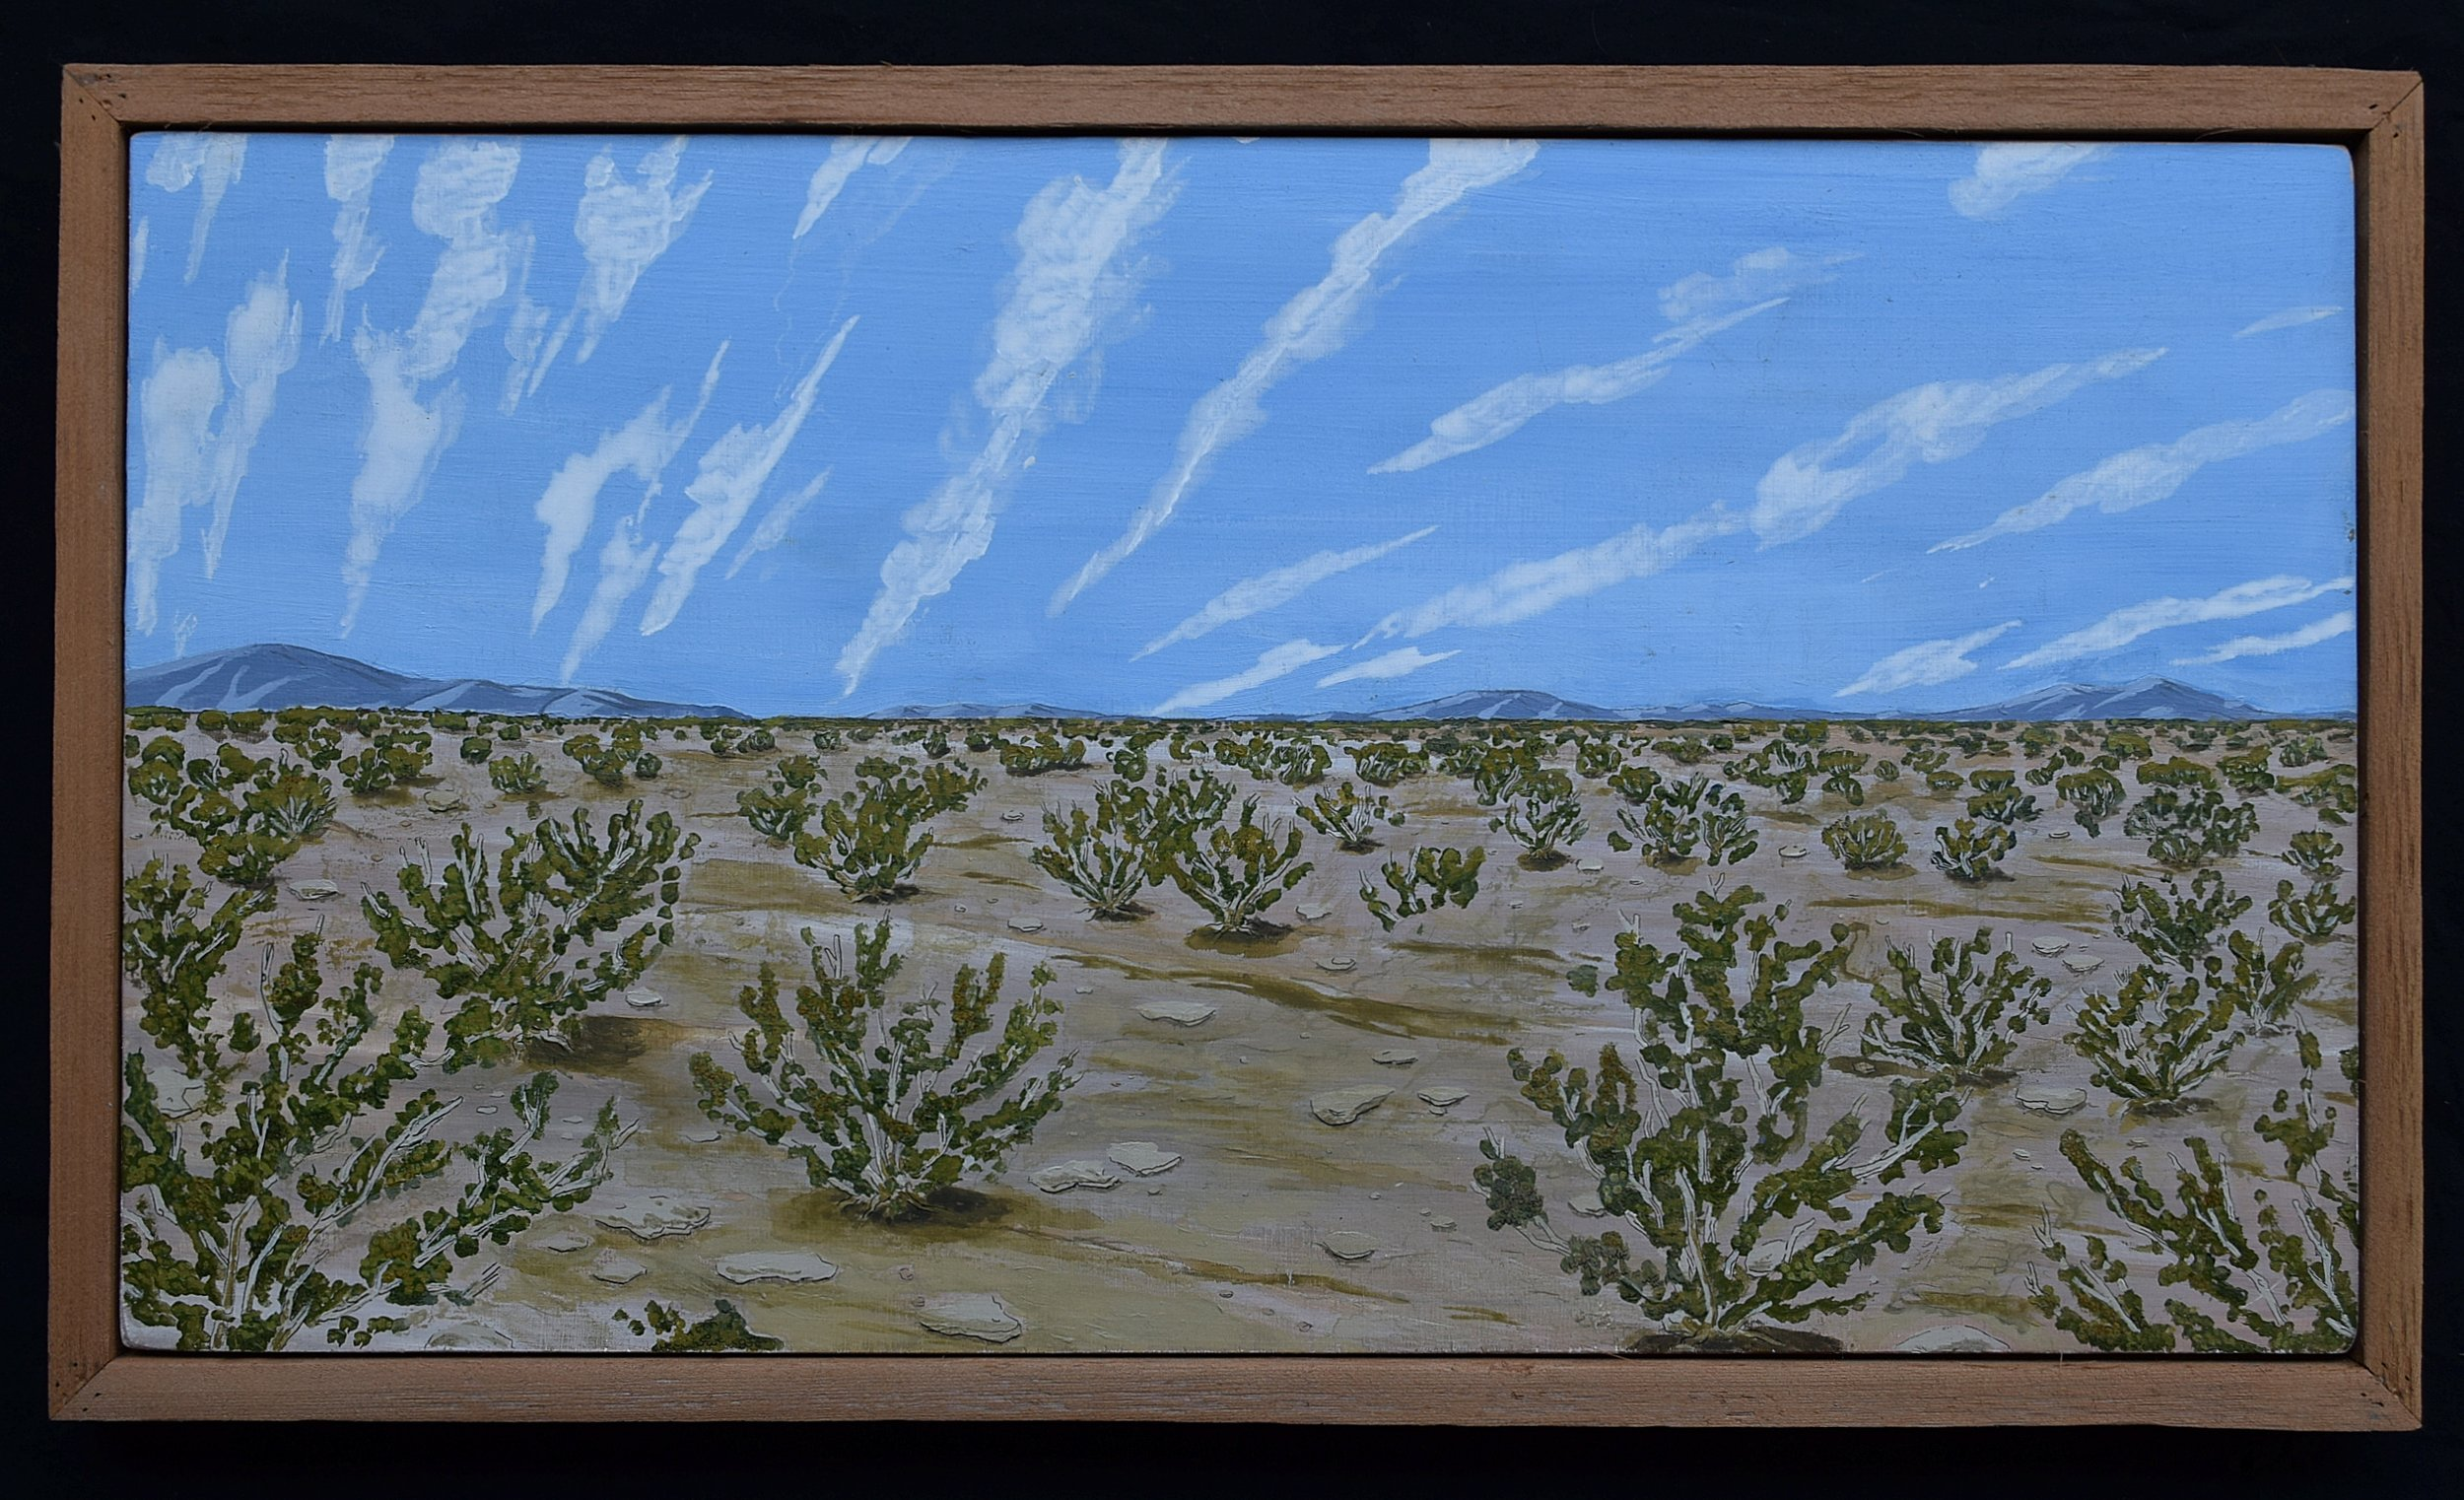 Creosote Desert.  2016. Acrylic on plywood. Private collection.